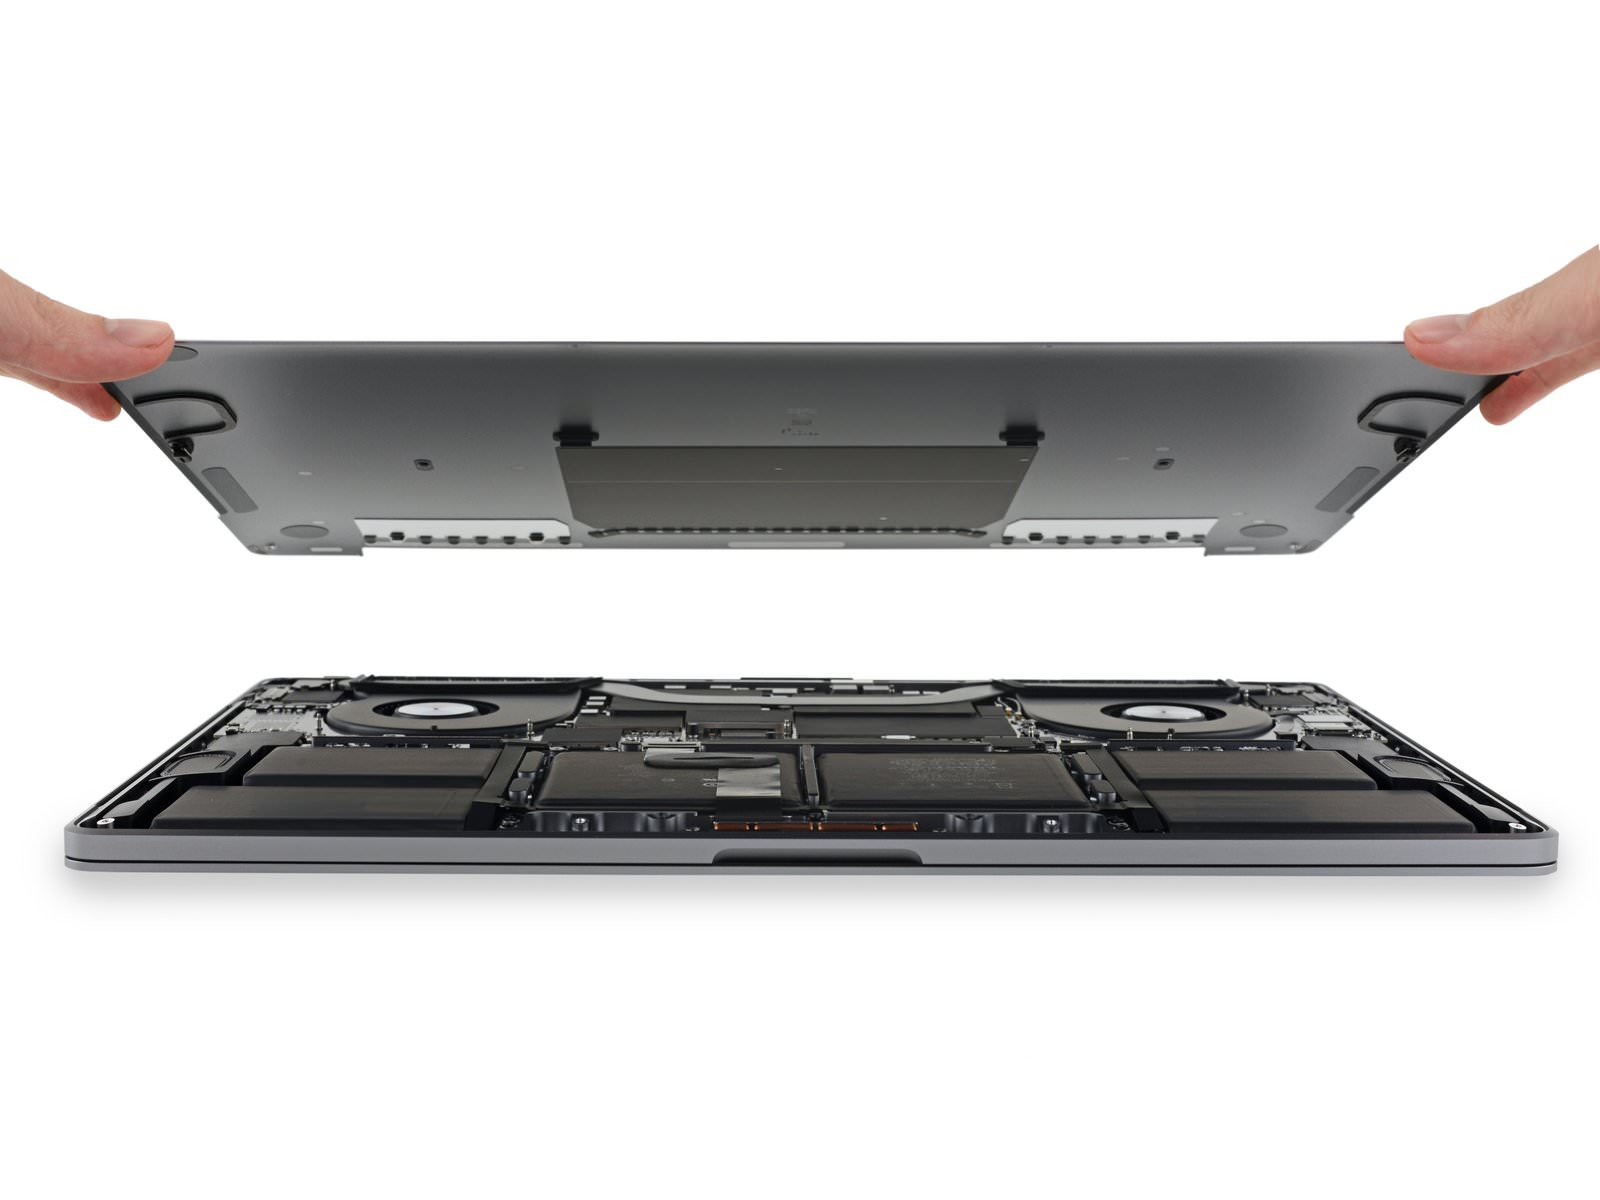 macbookpro-16inch-teardown-1.jpg